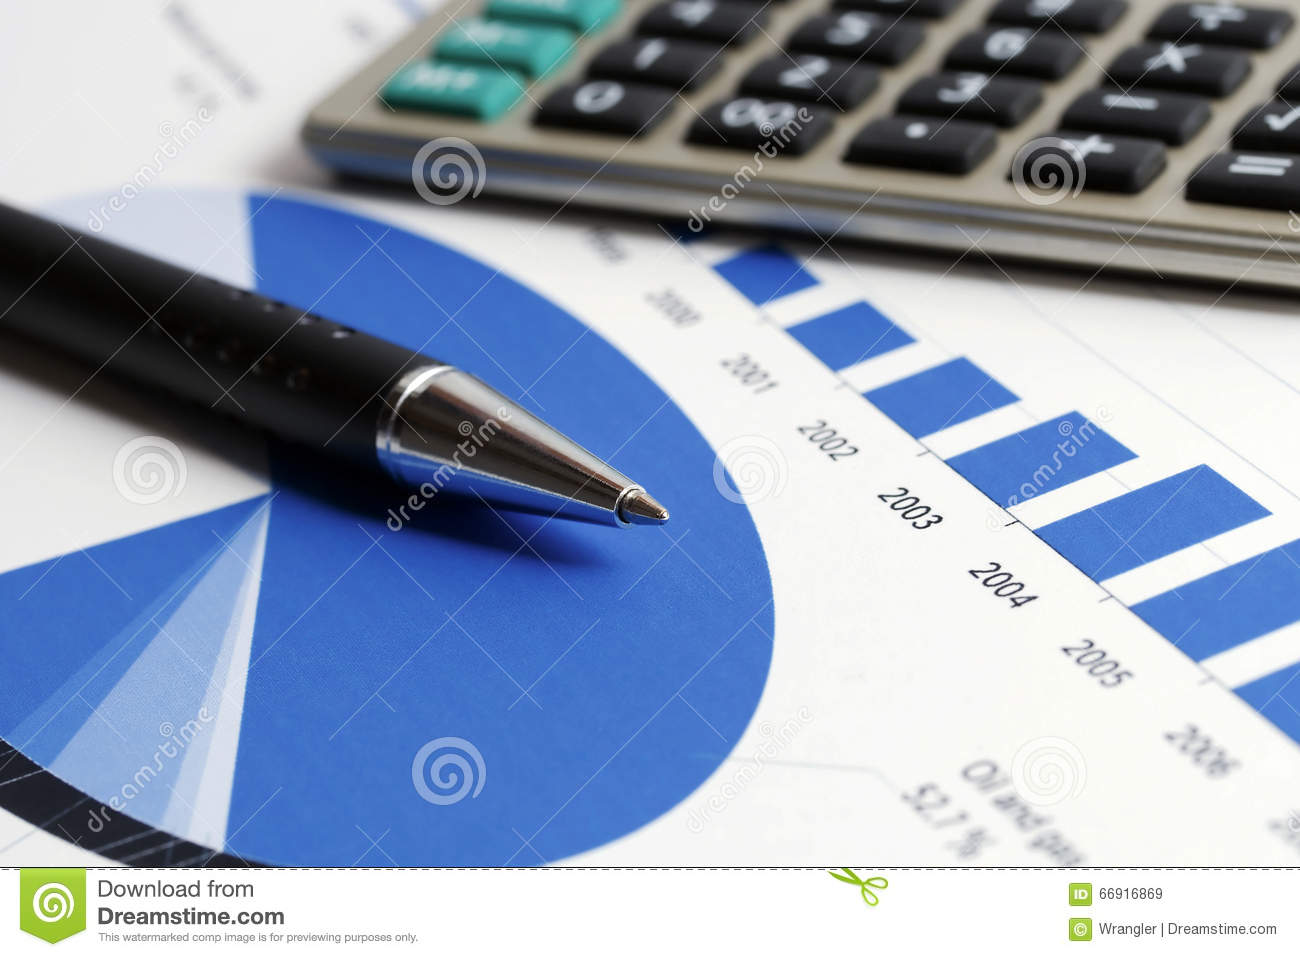 accounting analysis Accounting analysis journal is a peer-reviewed international journal contains theoretical as well as empirical studies regarding the financial and capital market accounting, auditing, accounting information systems, management accounting, taxation, public sector accounting, islamic accounting and accounting.